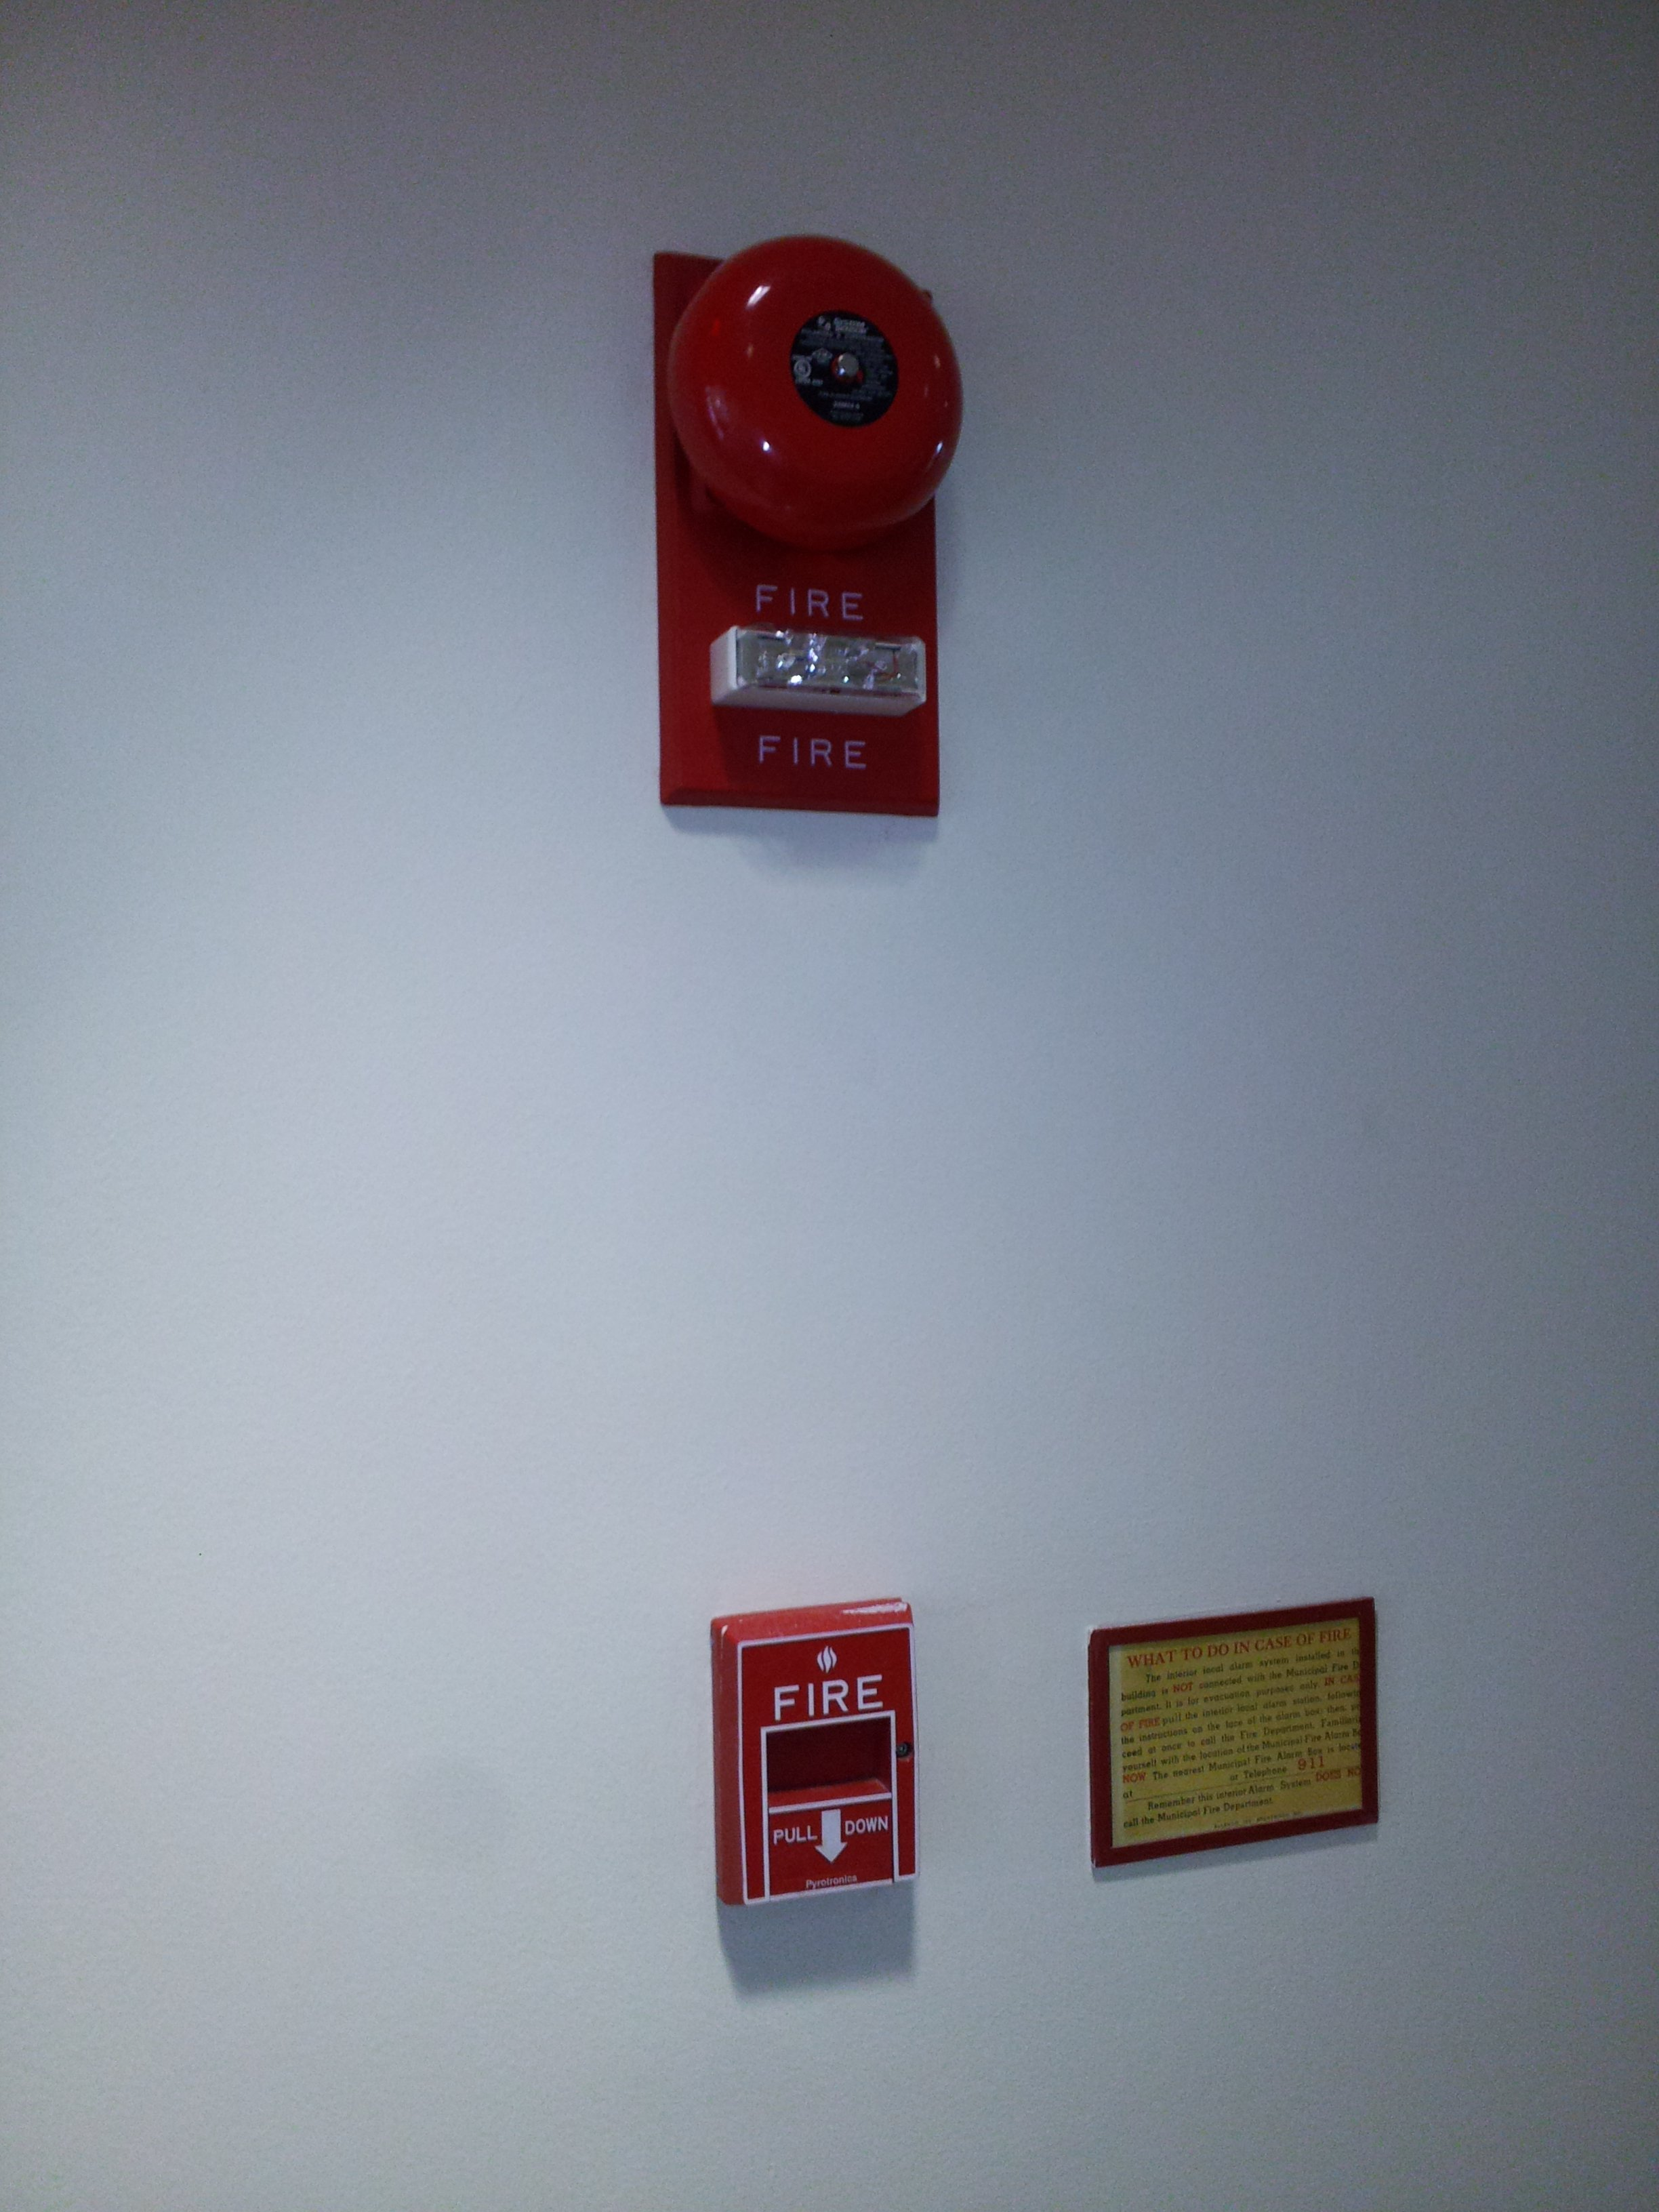 Graphic Annunciator additionally Ademco 5140mps 1 besides Fire Lite Bg 12 furthermore 520435 Class B Fire Alarm Wiring also 13121. on edwards fire alarm